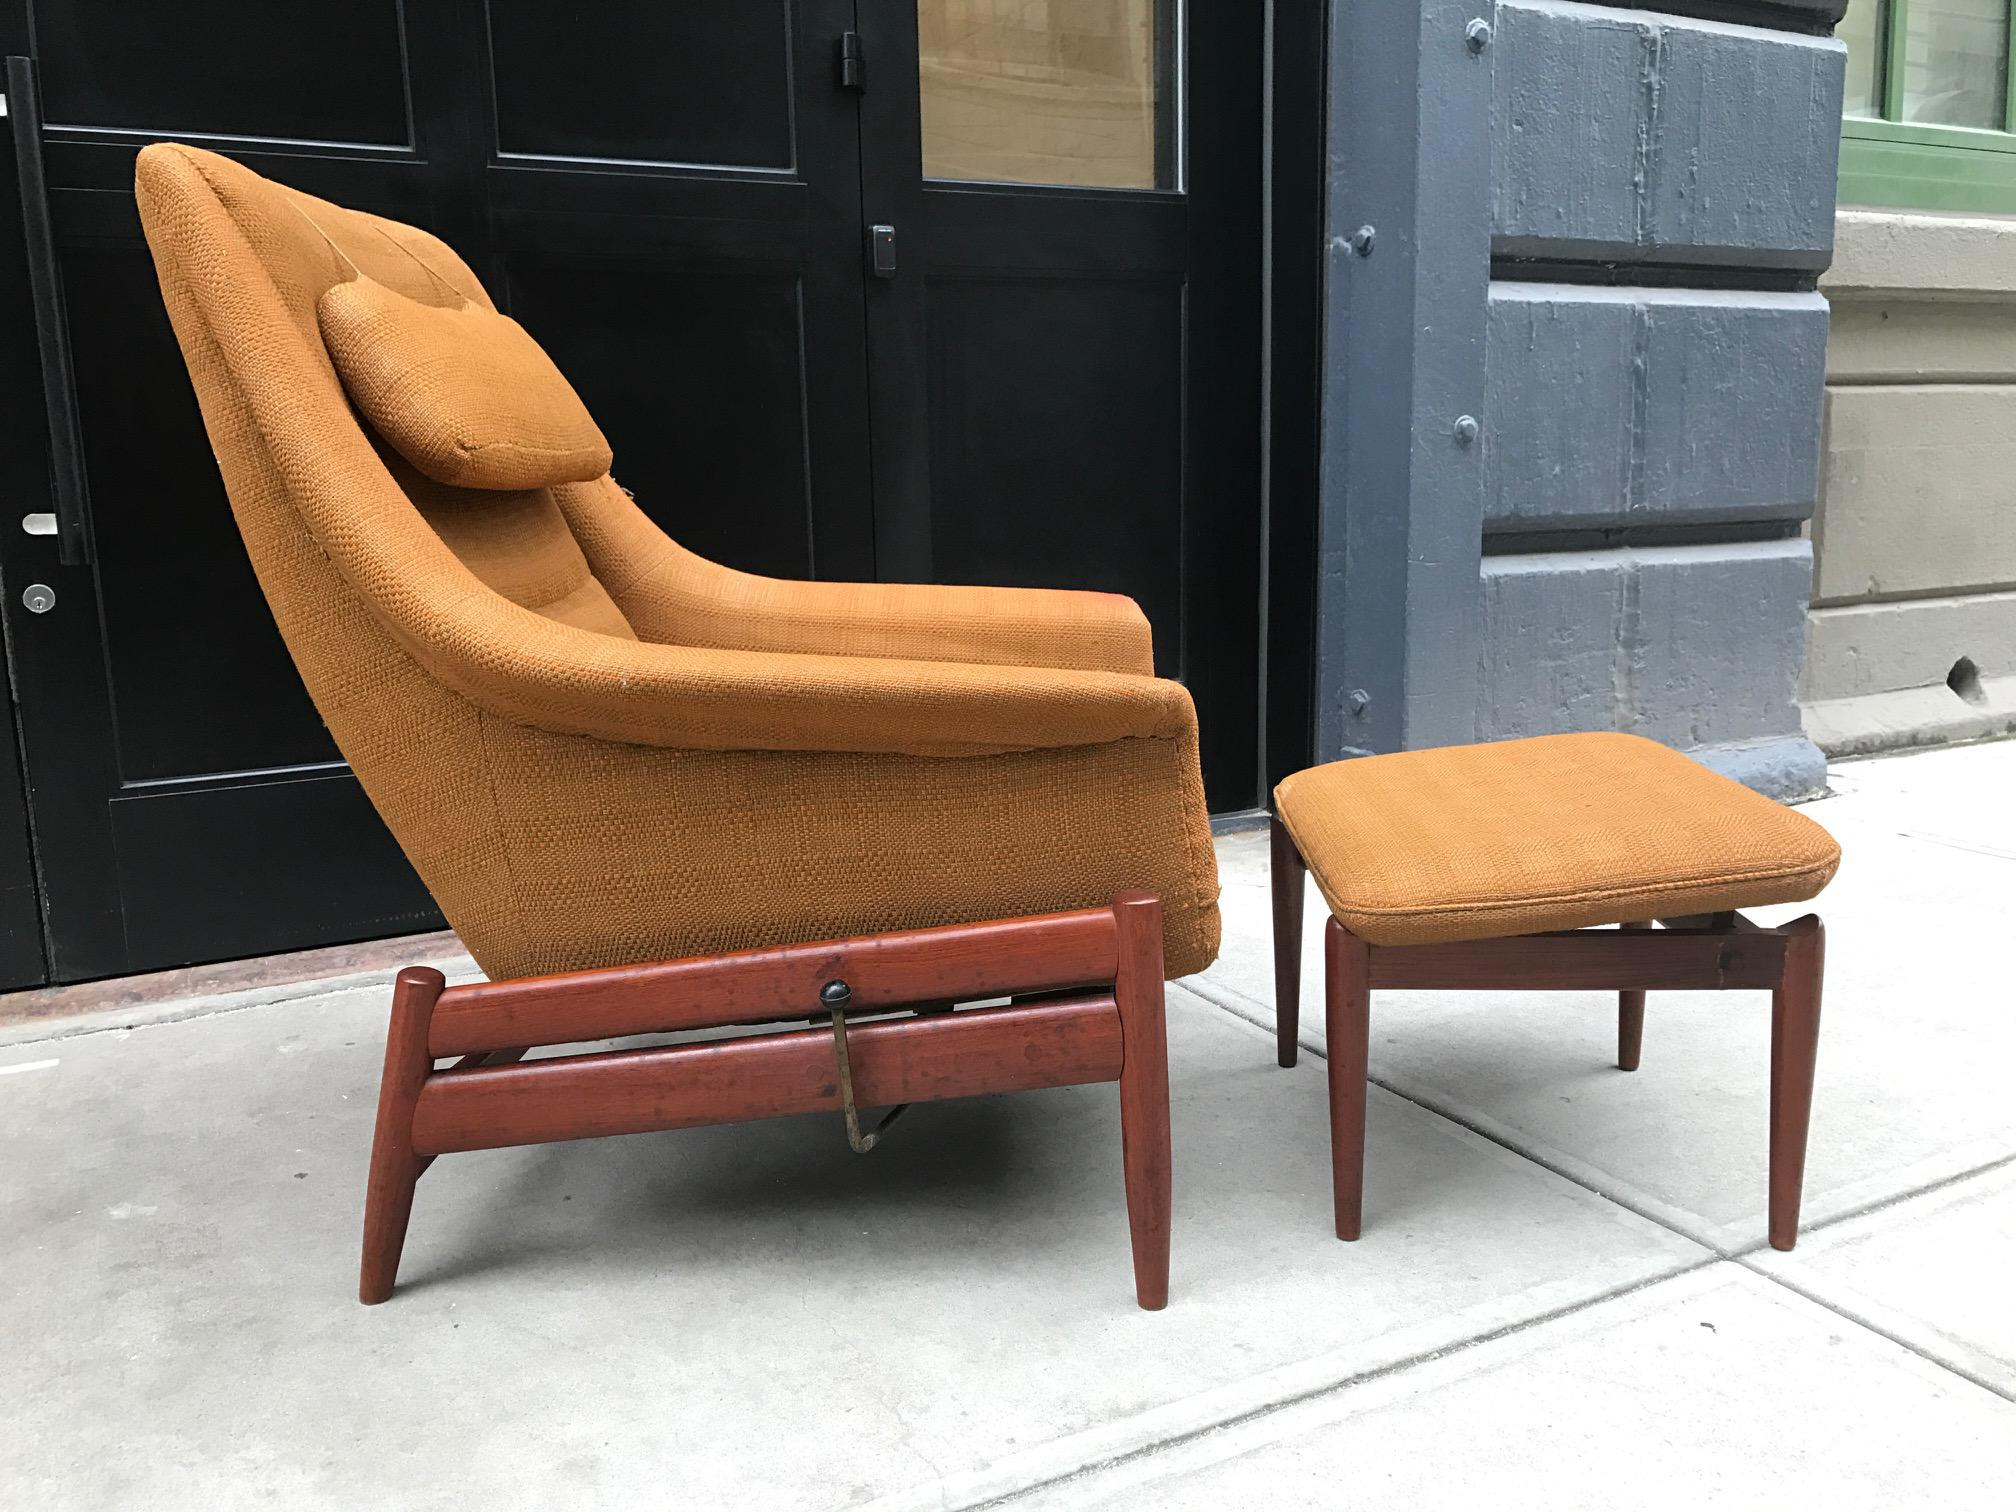 Charmant Povl Dinesen Danish Modern Lounge Chair And Ottoman   Image 2 Of 4